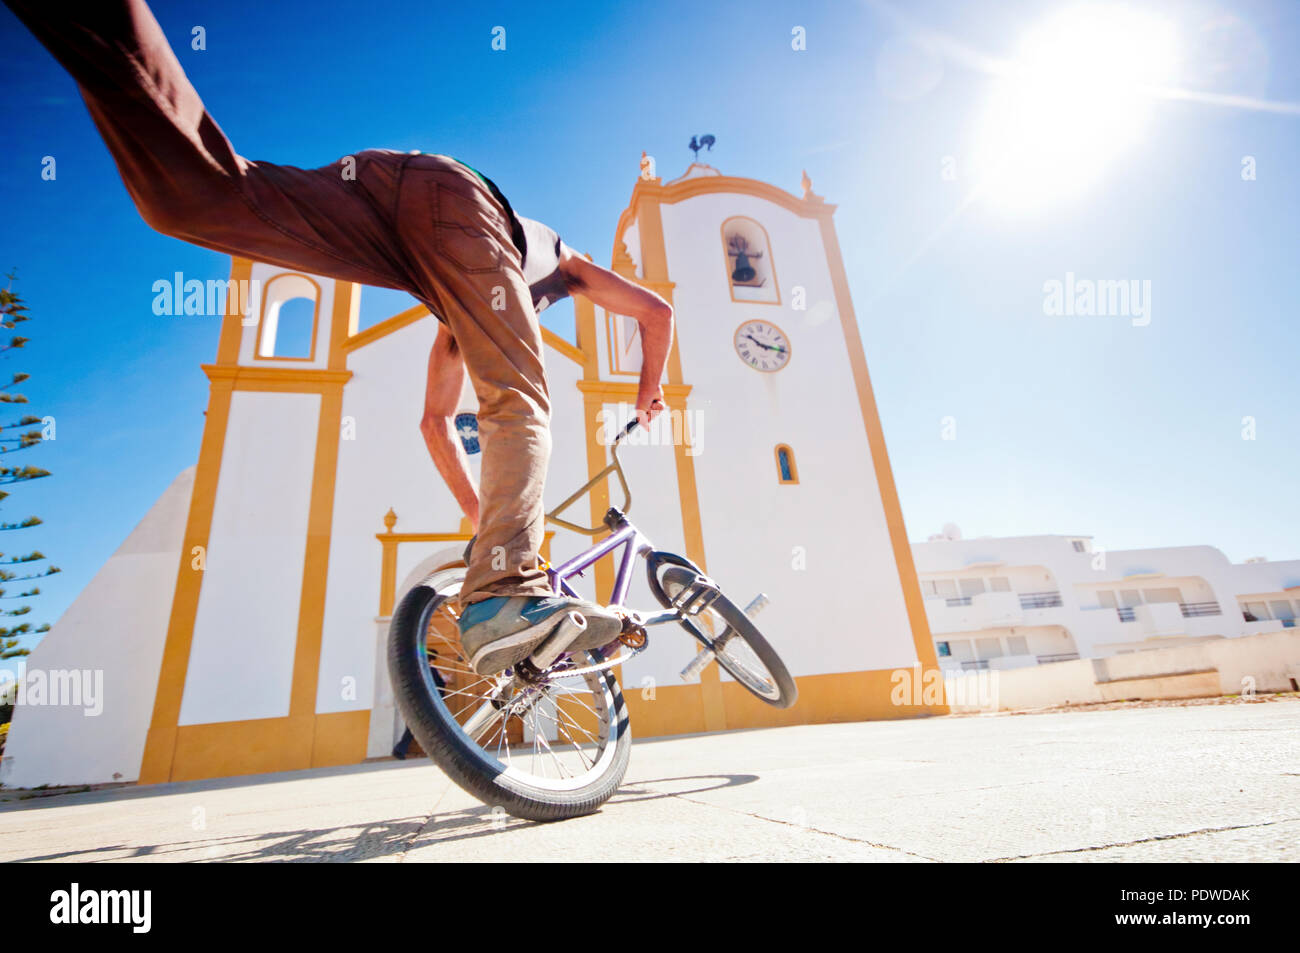 young man have fun doing tricks with freestlye bike in a sware in front of a church. contrast between classic and modern related lifestyle. sunny day  - Stock Image